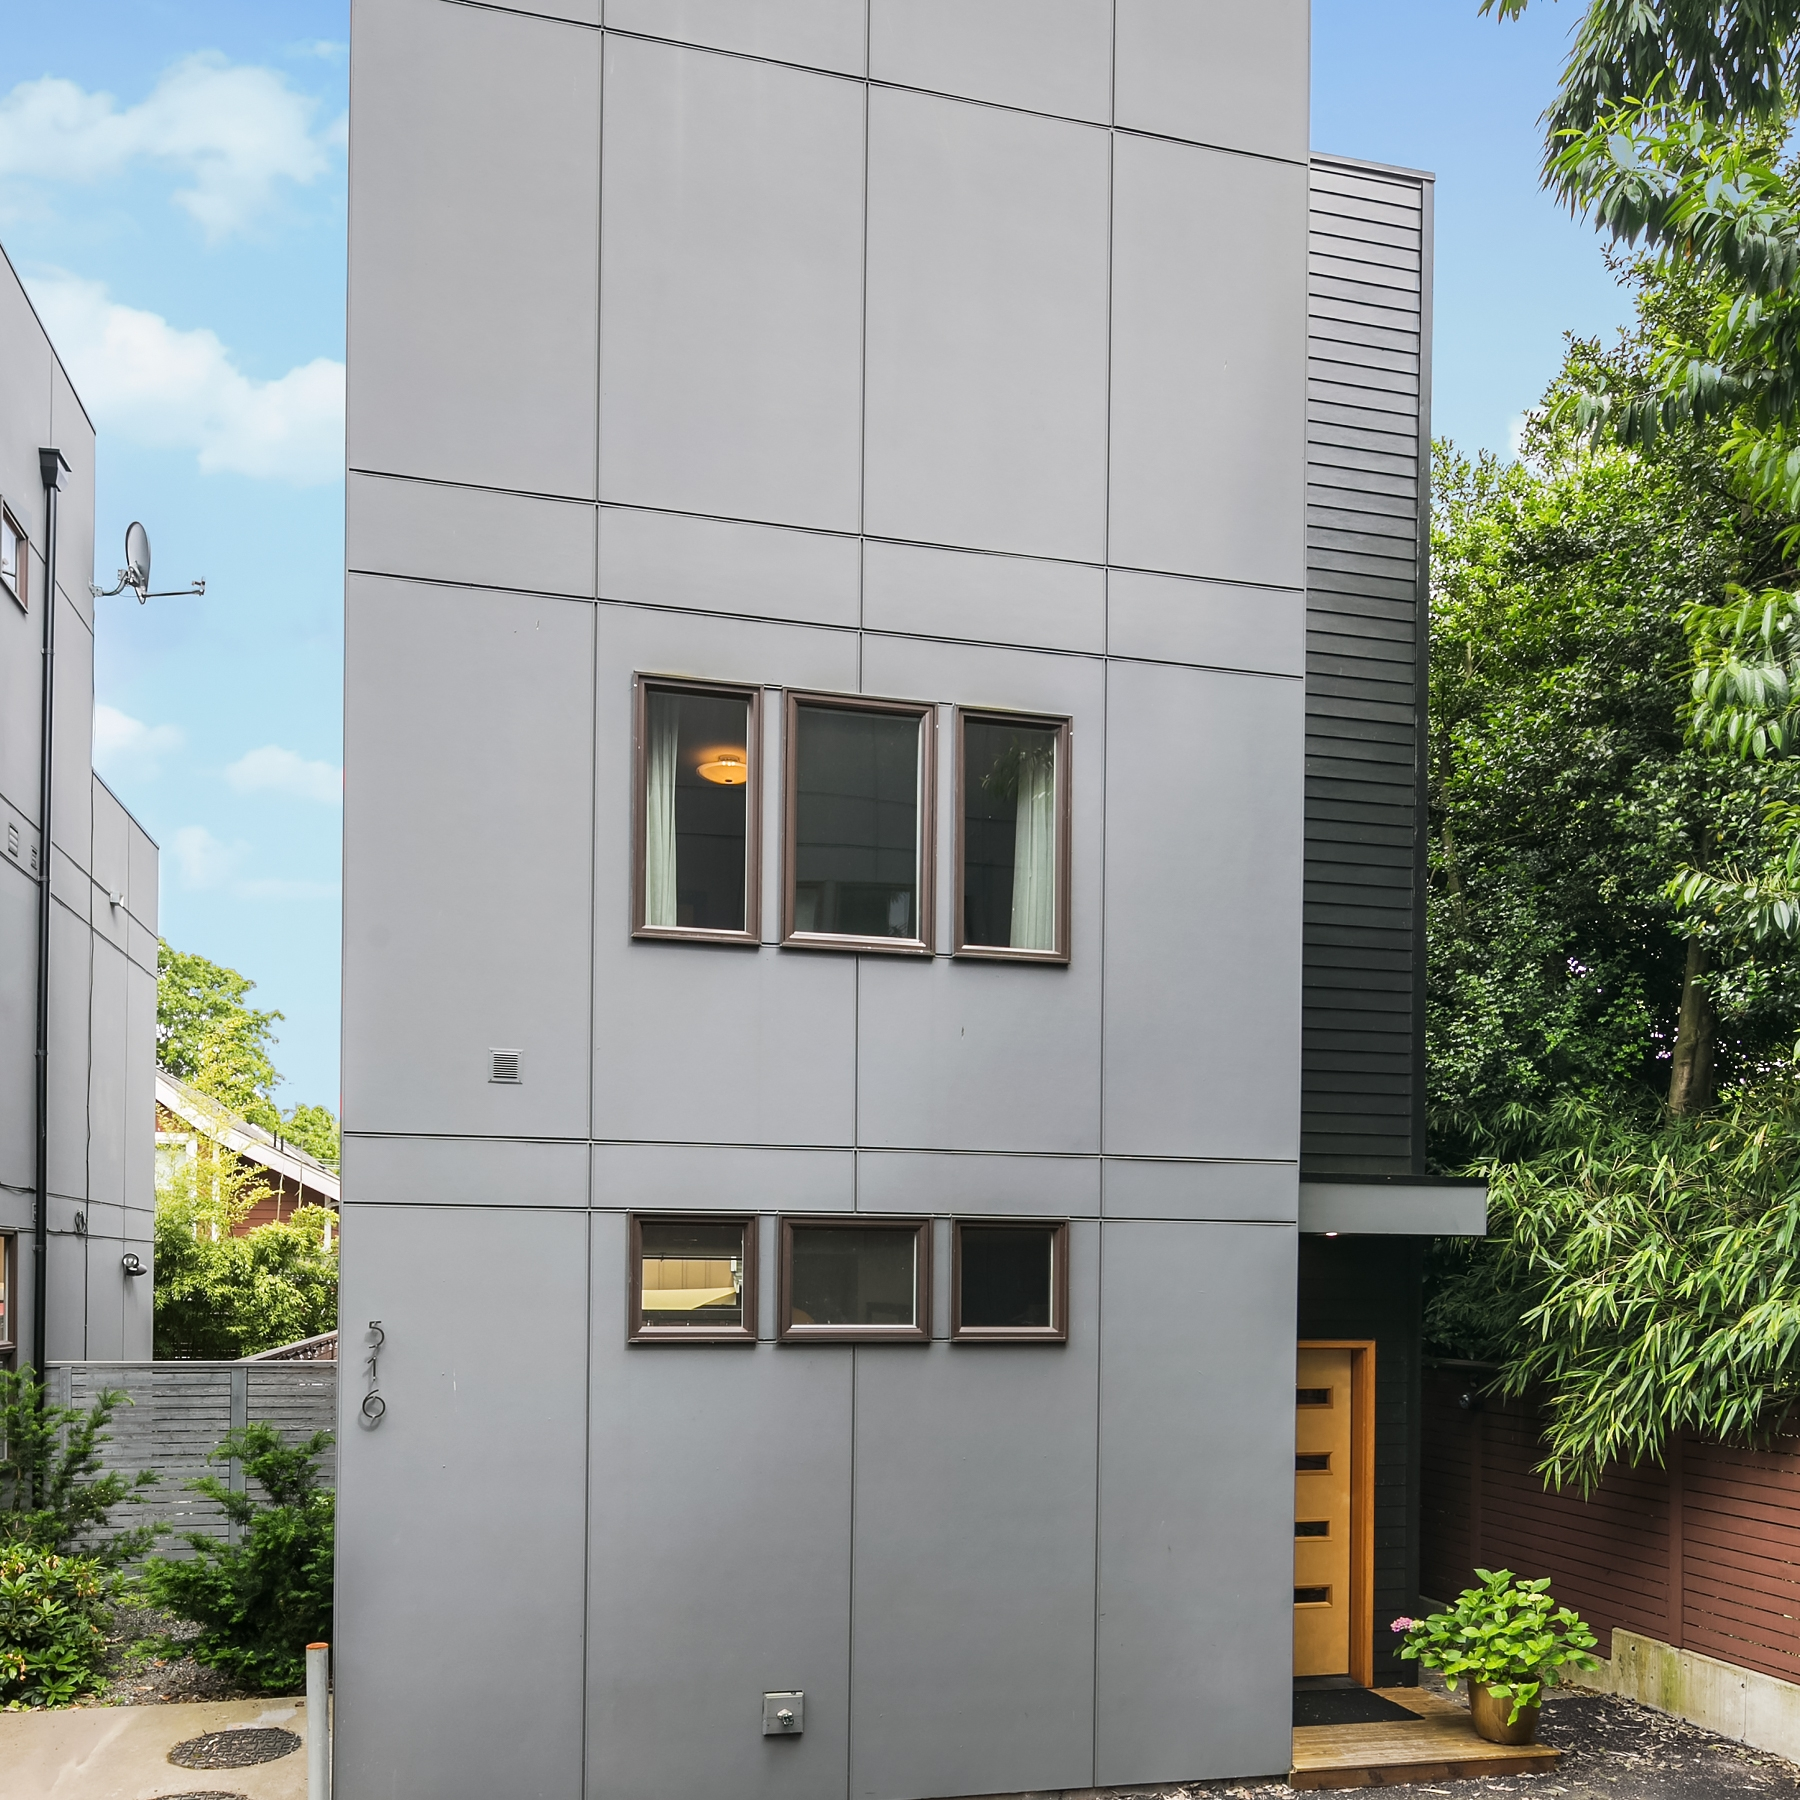 Seattle Townhome - $735,000